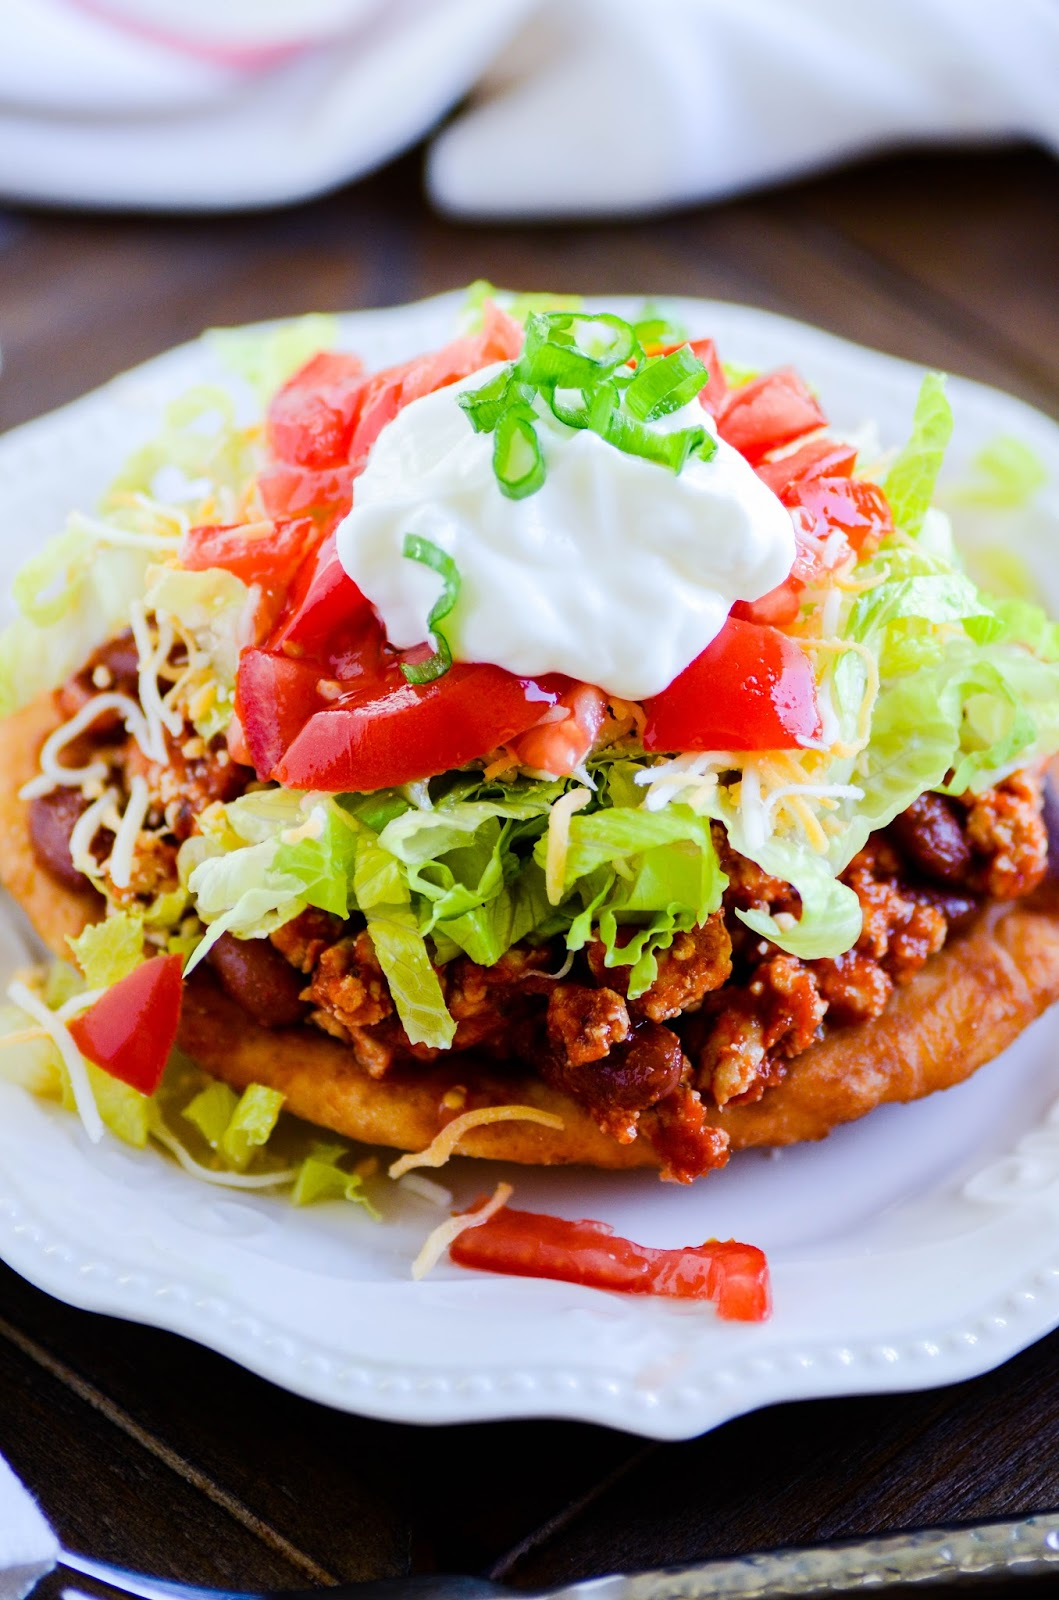 These Navajo Tacos have been one of our favorite weeknight dinners ever! The soft Indian fry bread on the bottom is incredible, and you can even save a few for after dinner to spread with honey butter and jam.